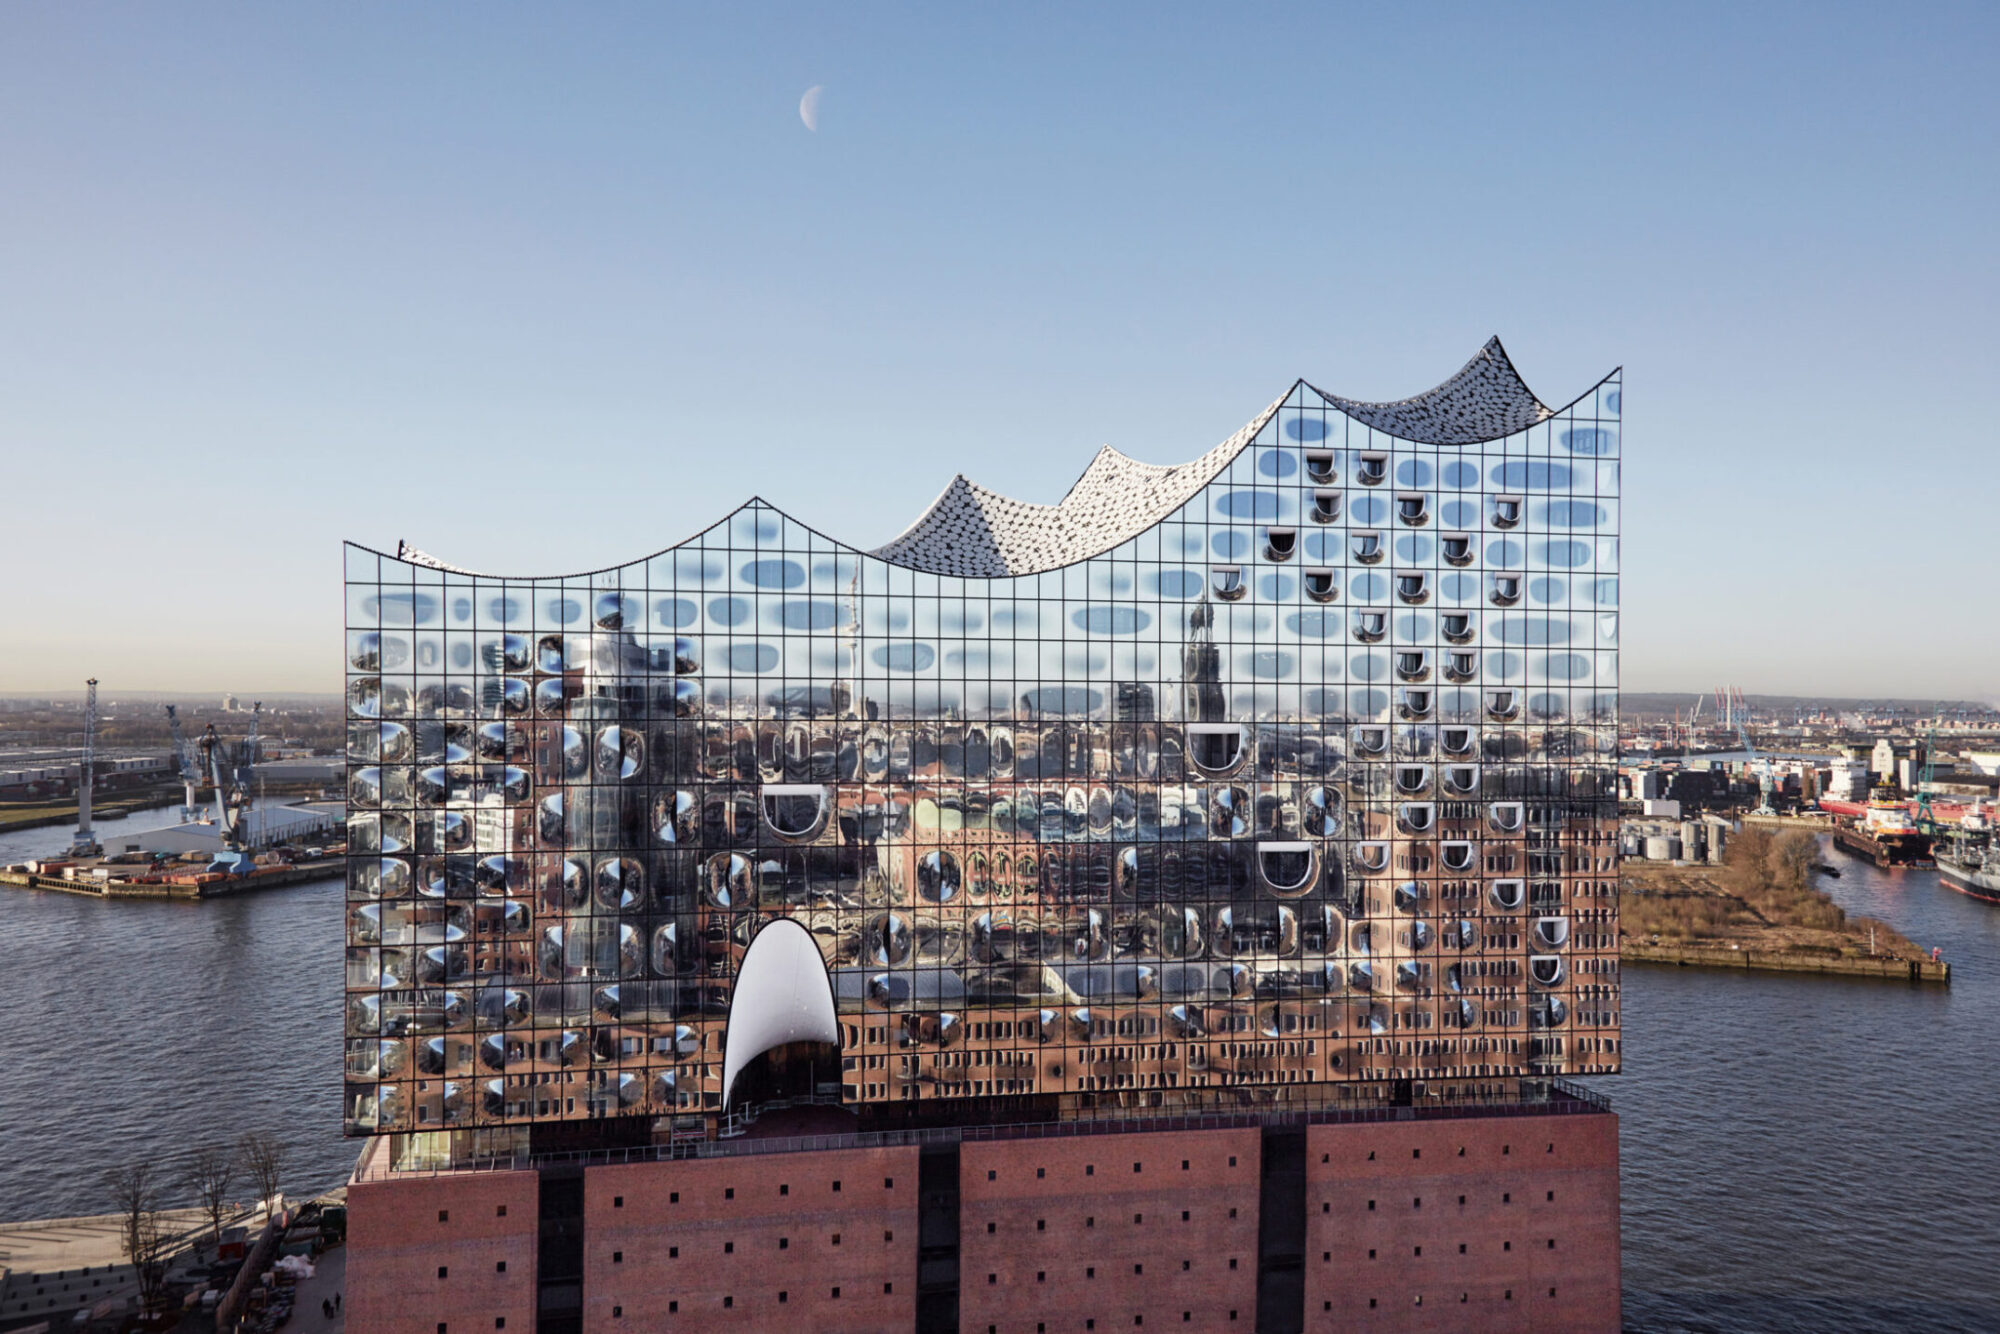 Elbphilharmonie / Photo: Maxim Schulz